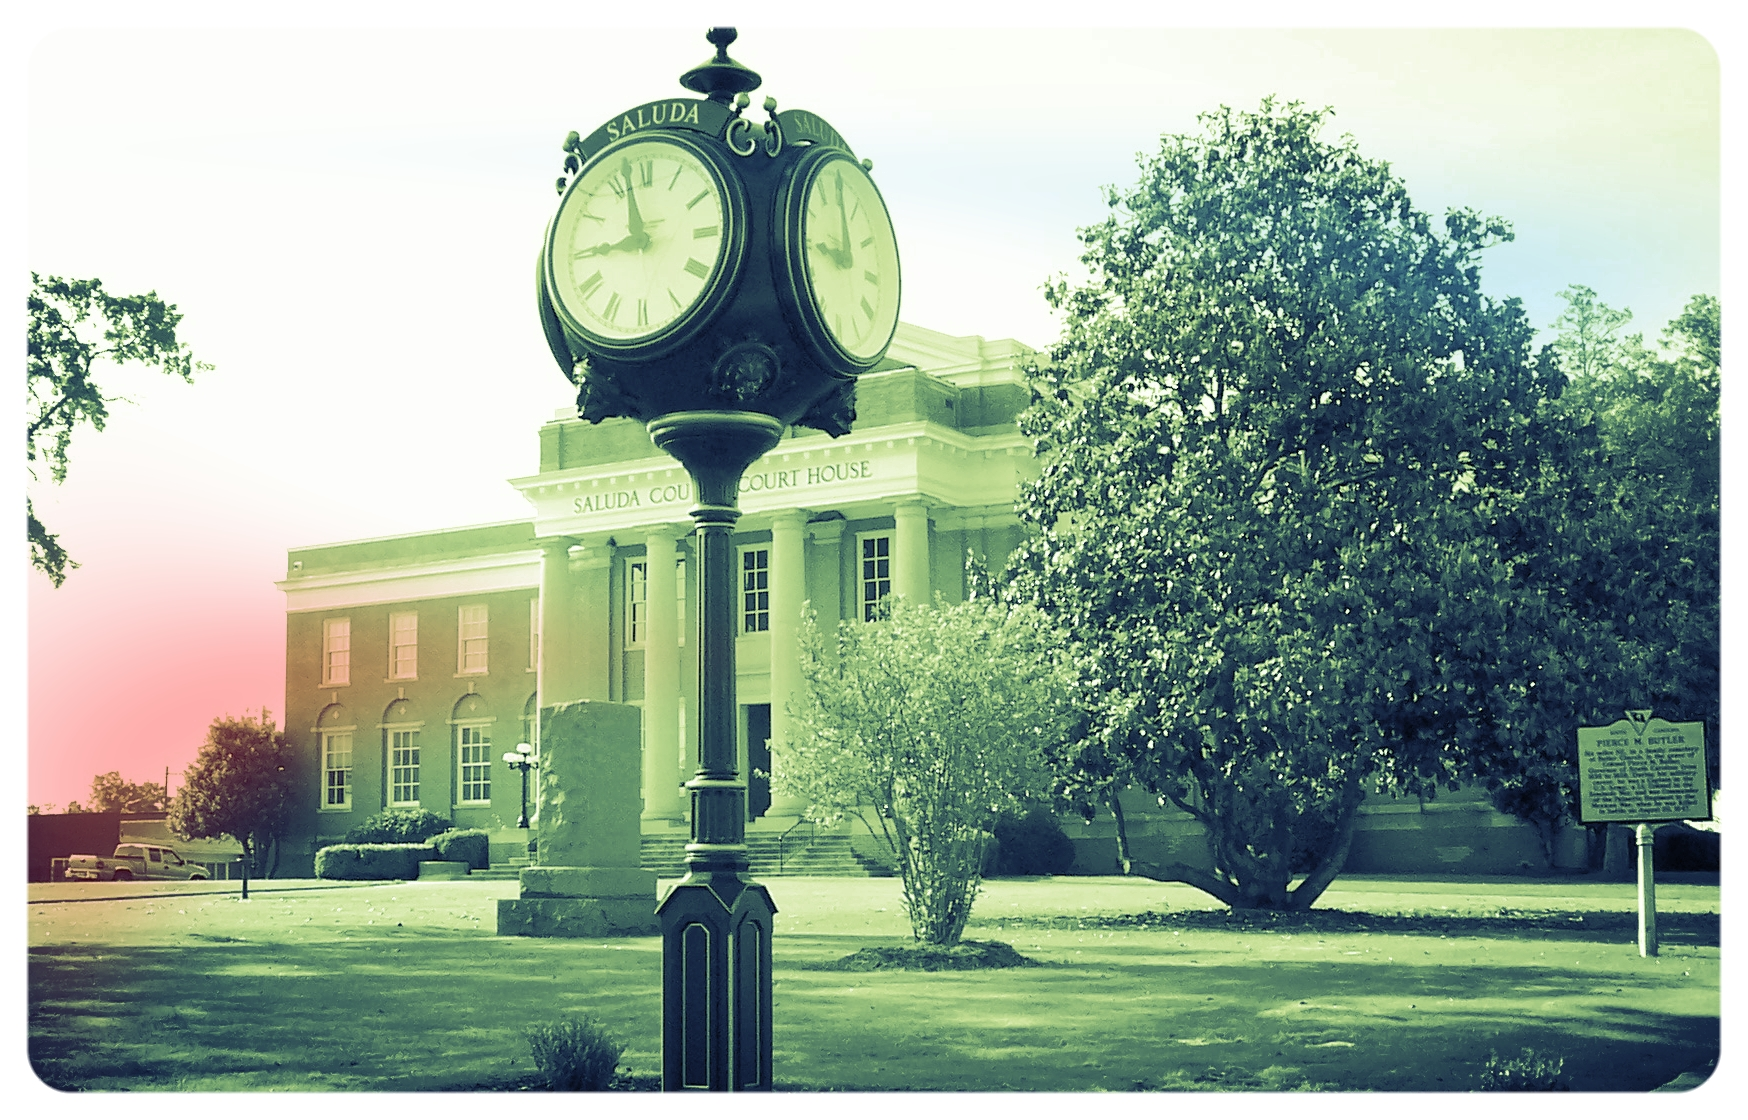 Saluda county Court house